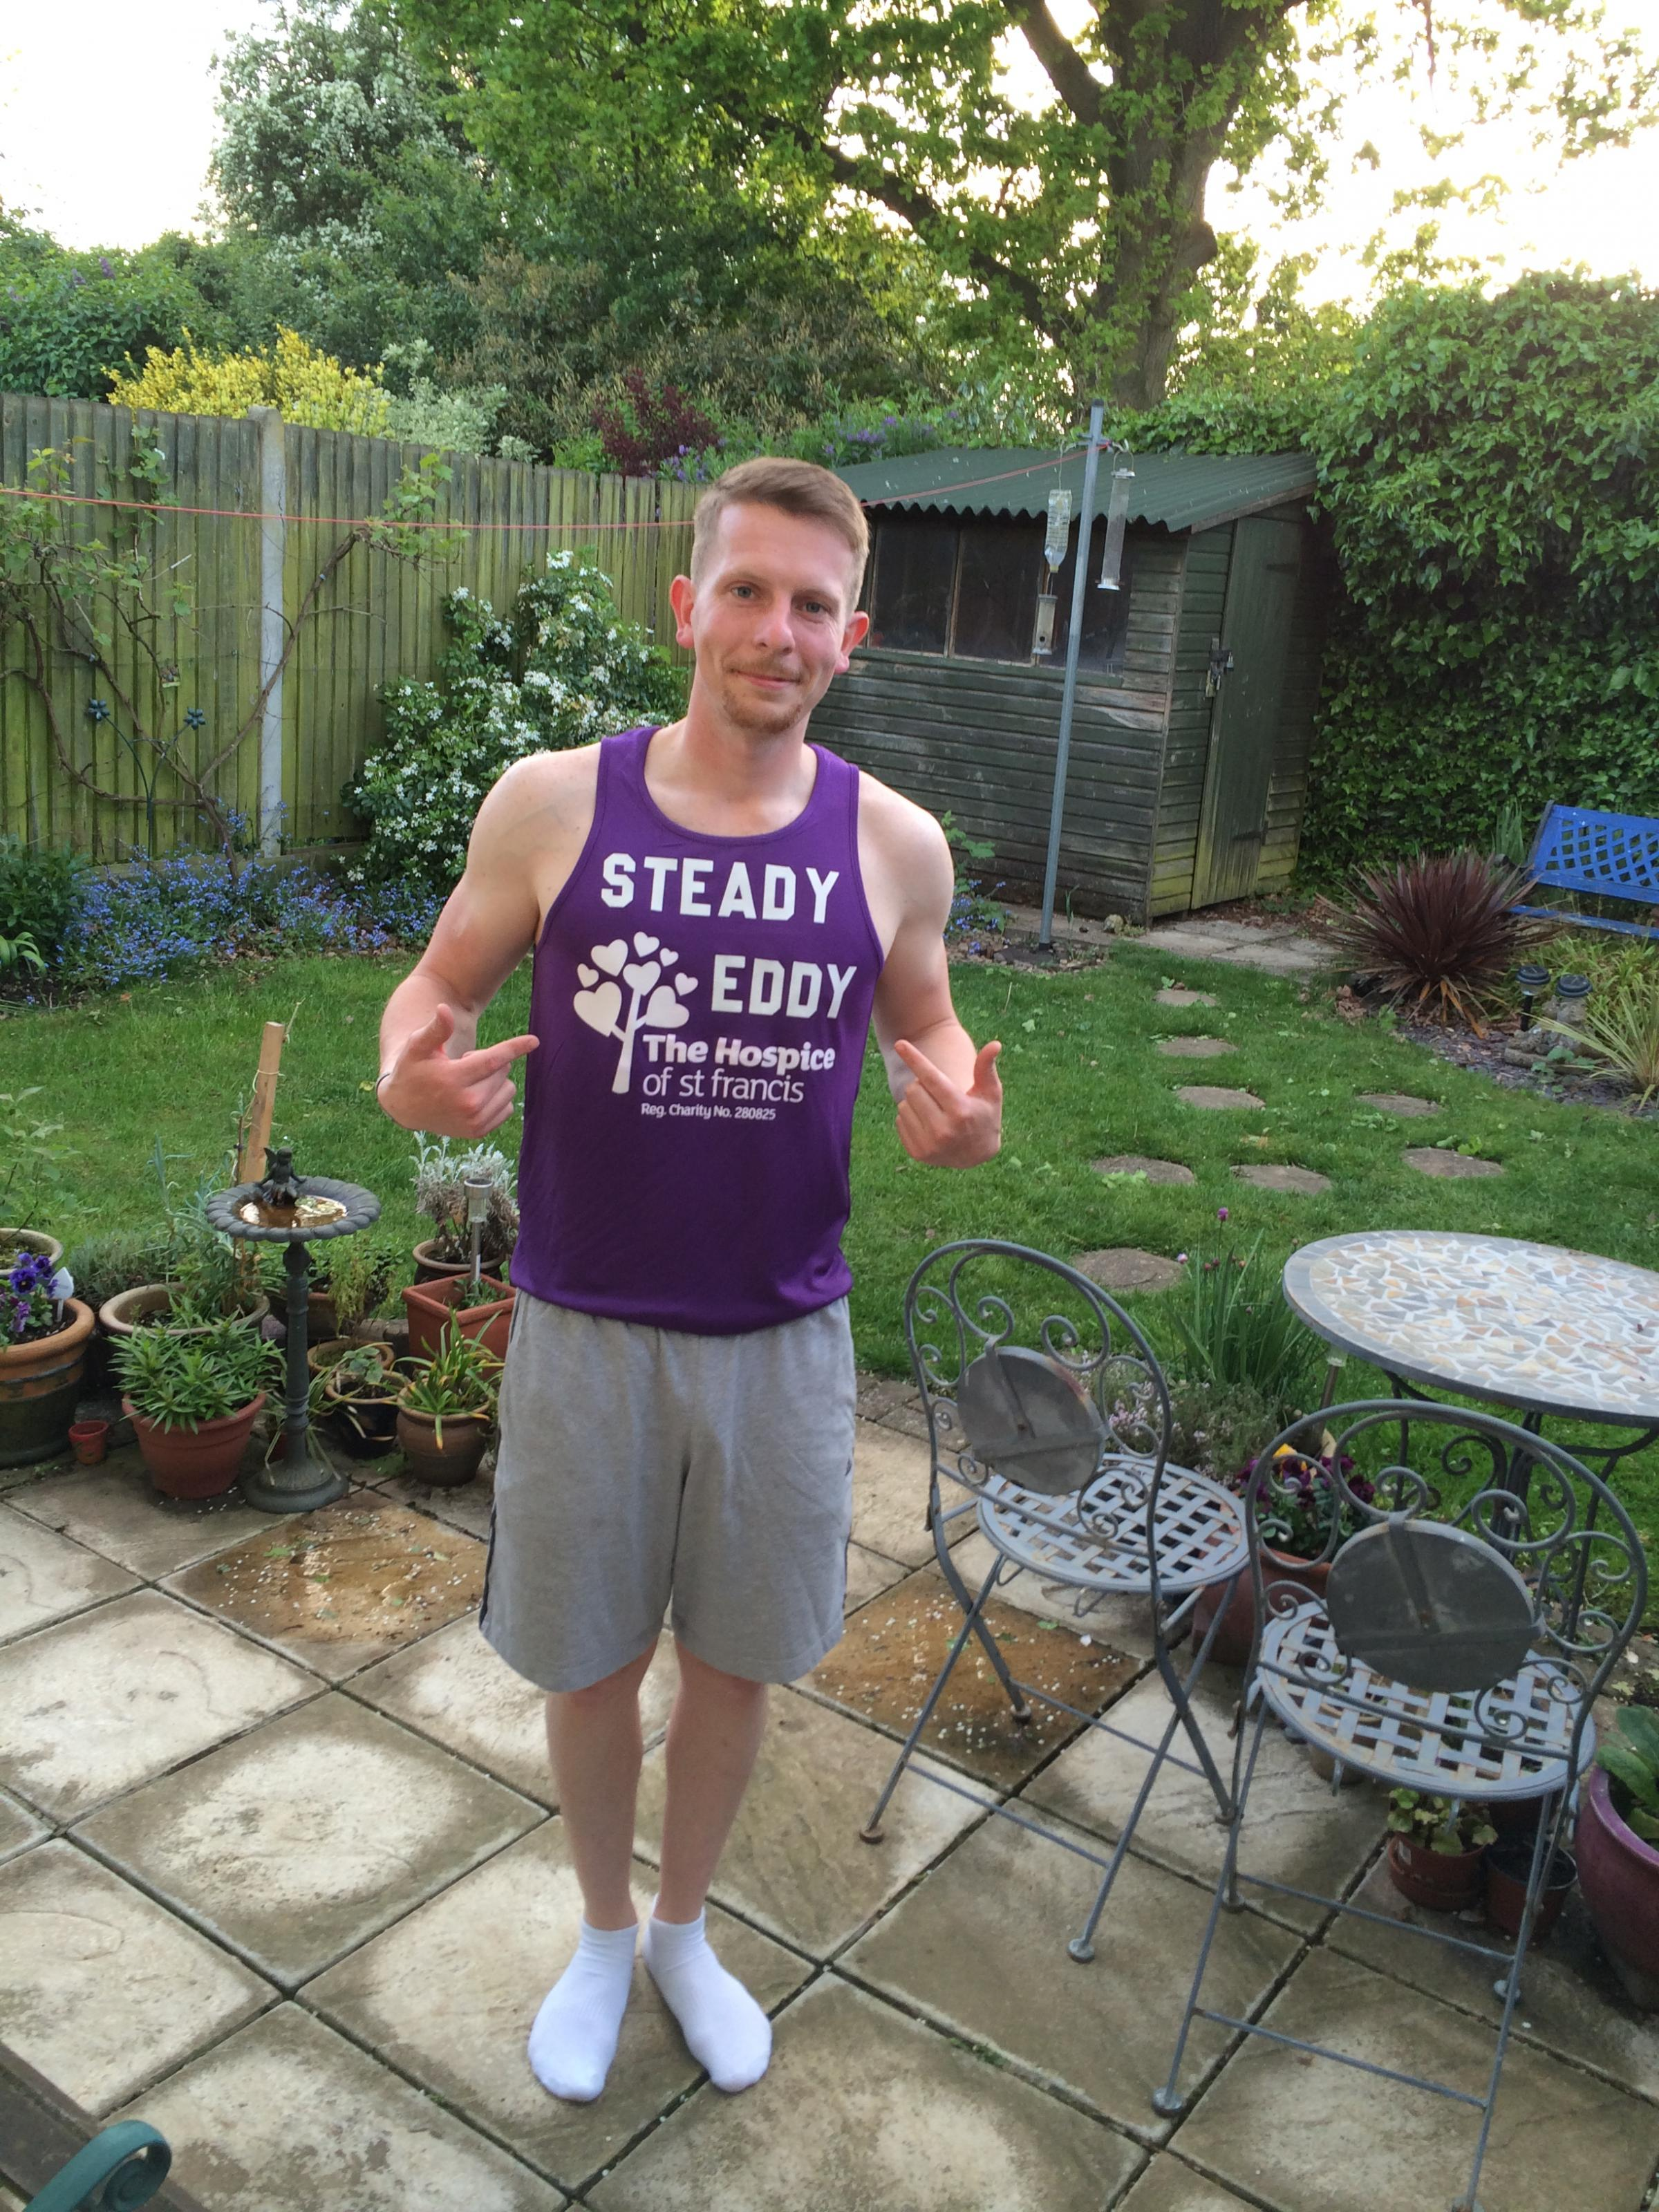 London Colney man to tackle half marathon in memory of friends and family